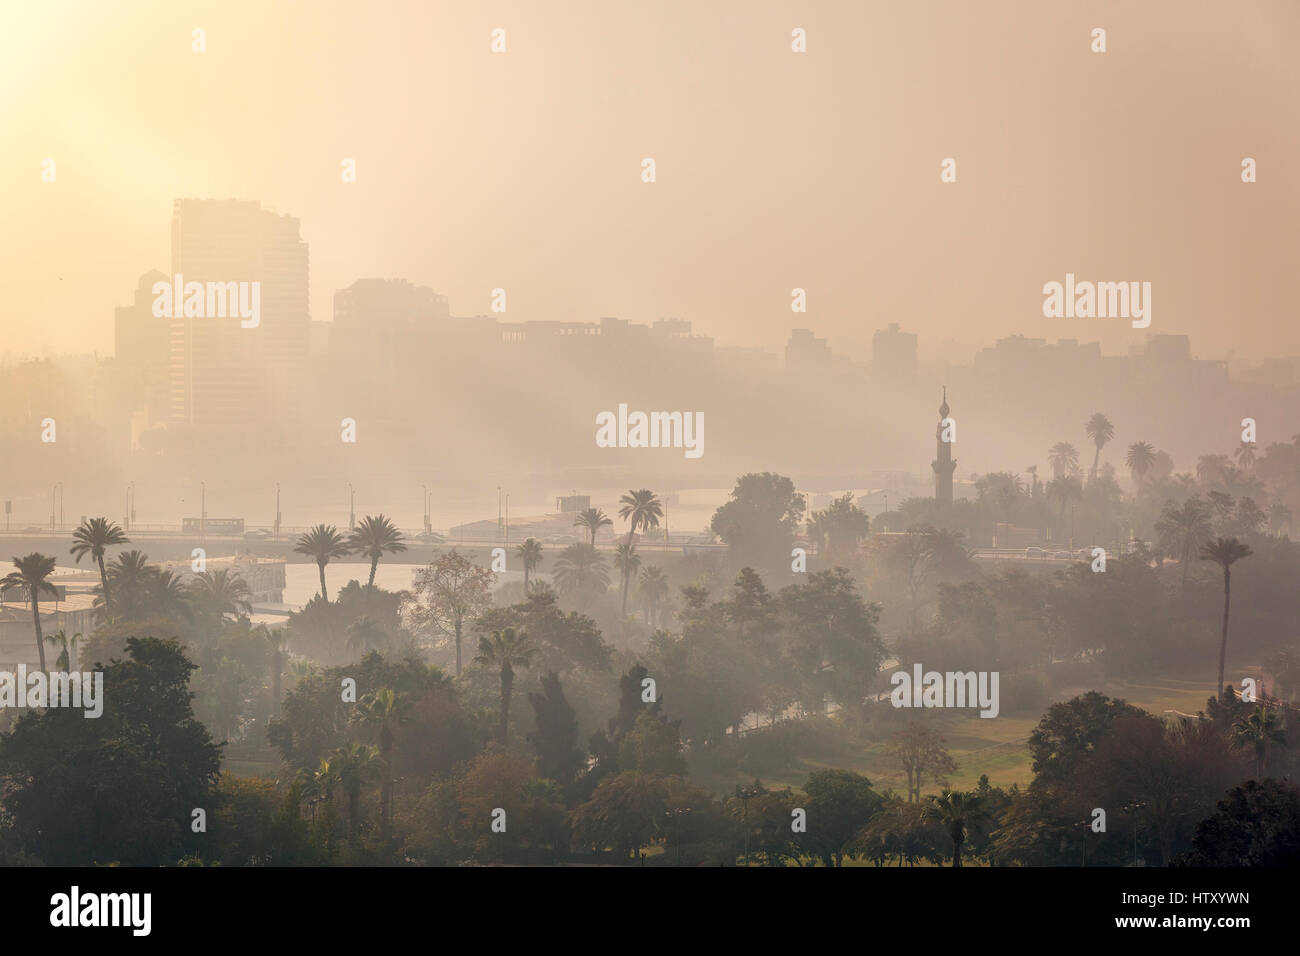 Sunrise in central Cairo, the first rays of sun piercing through the morning mist. - Stock Image